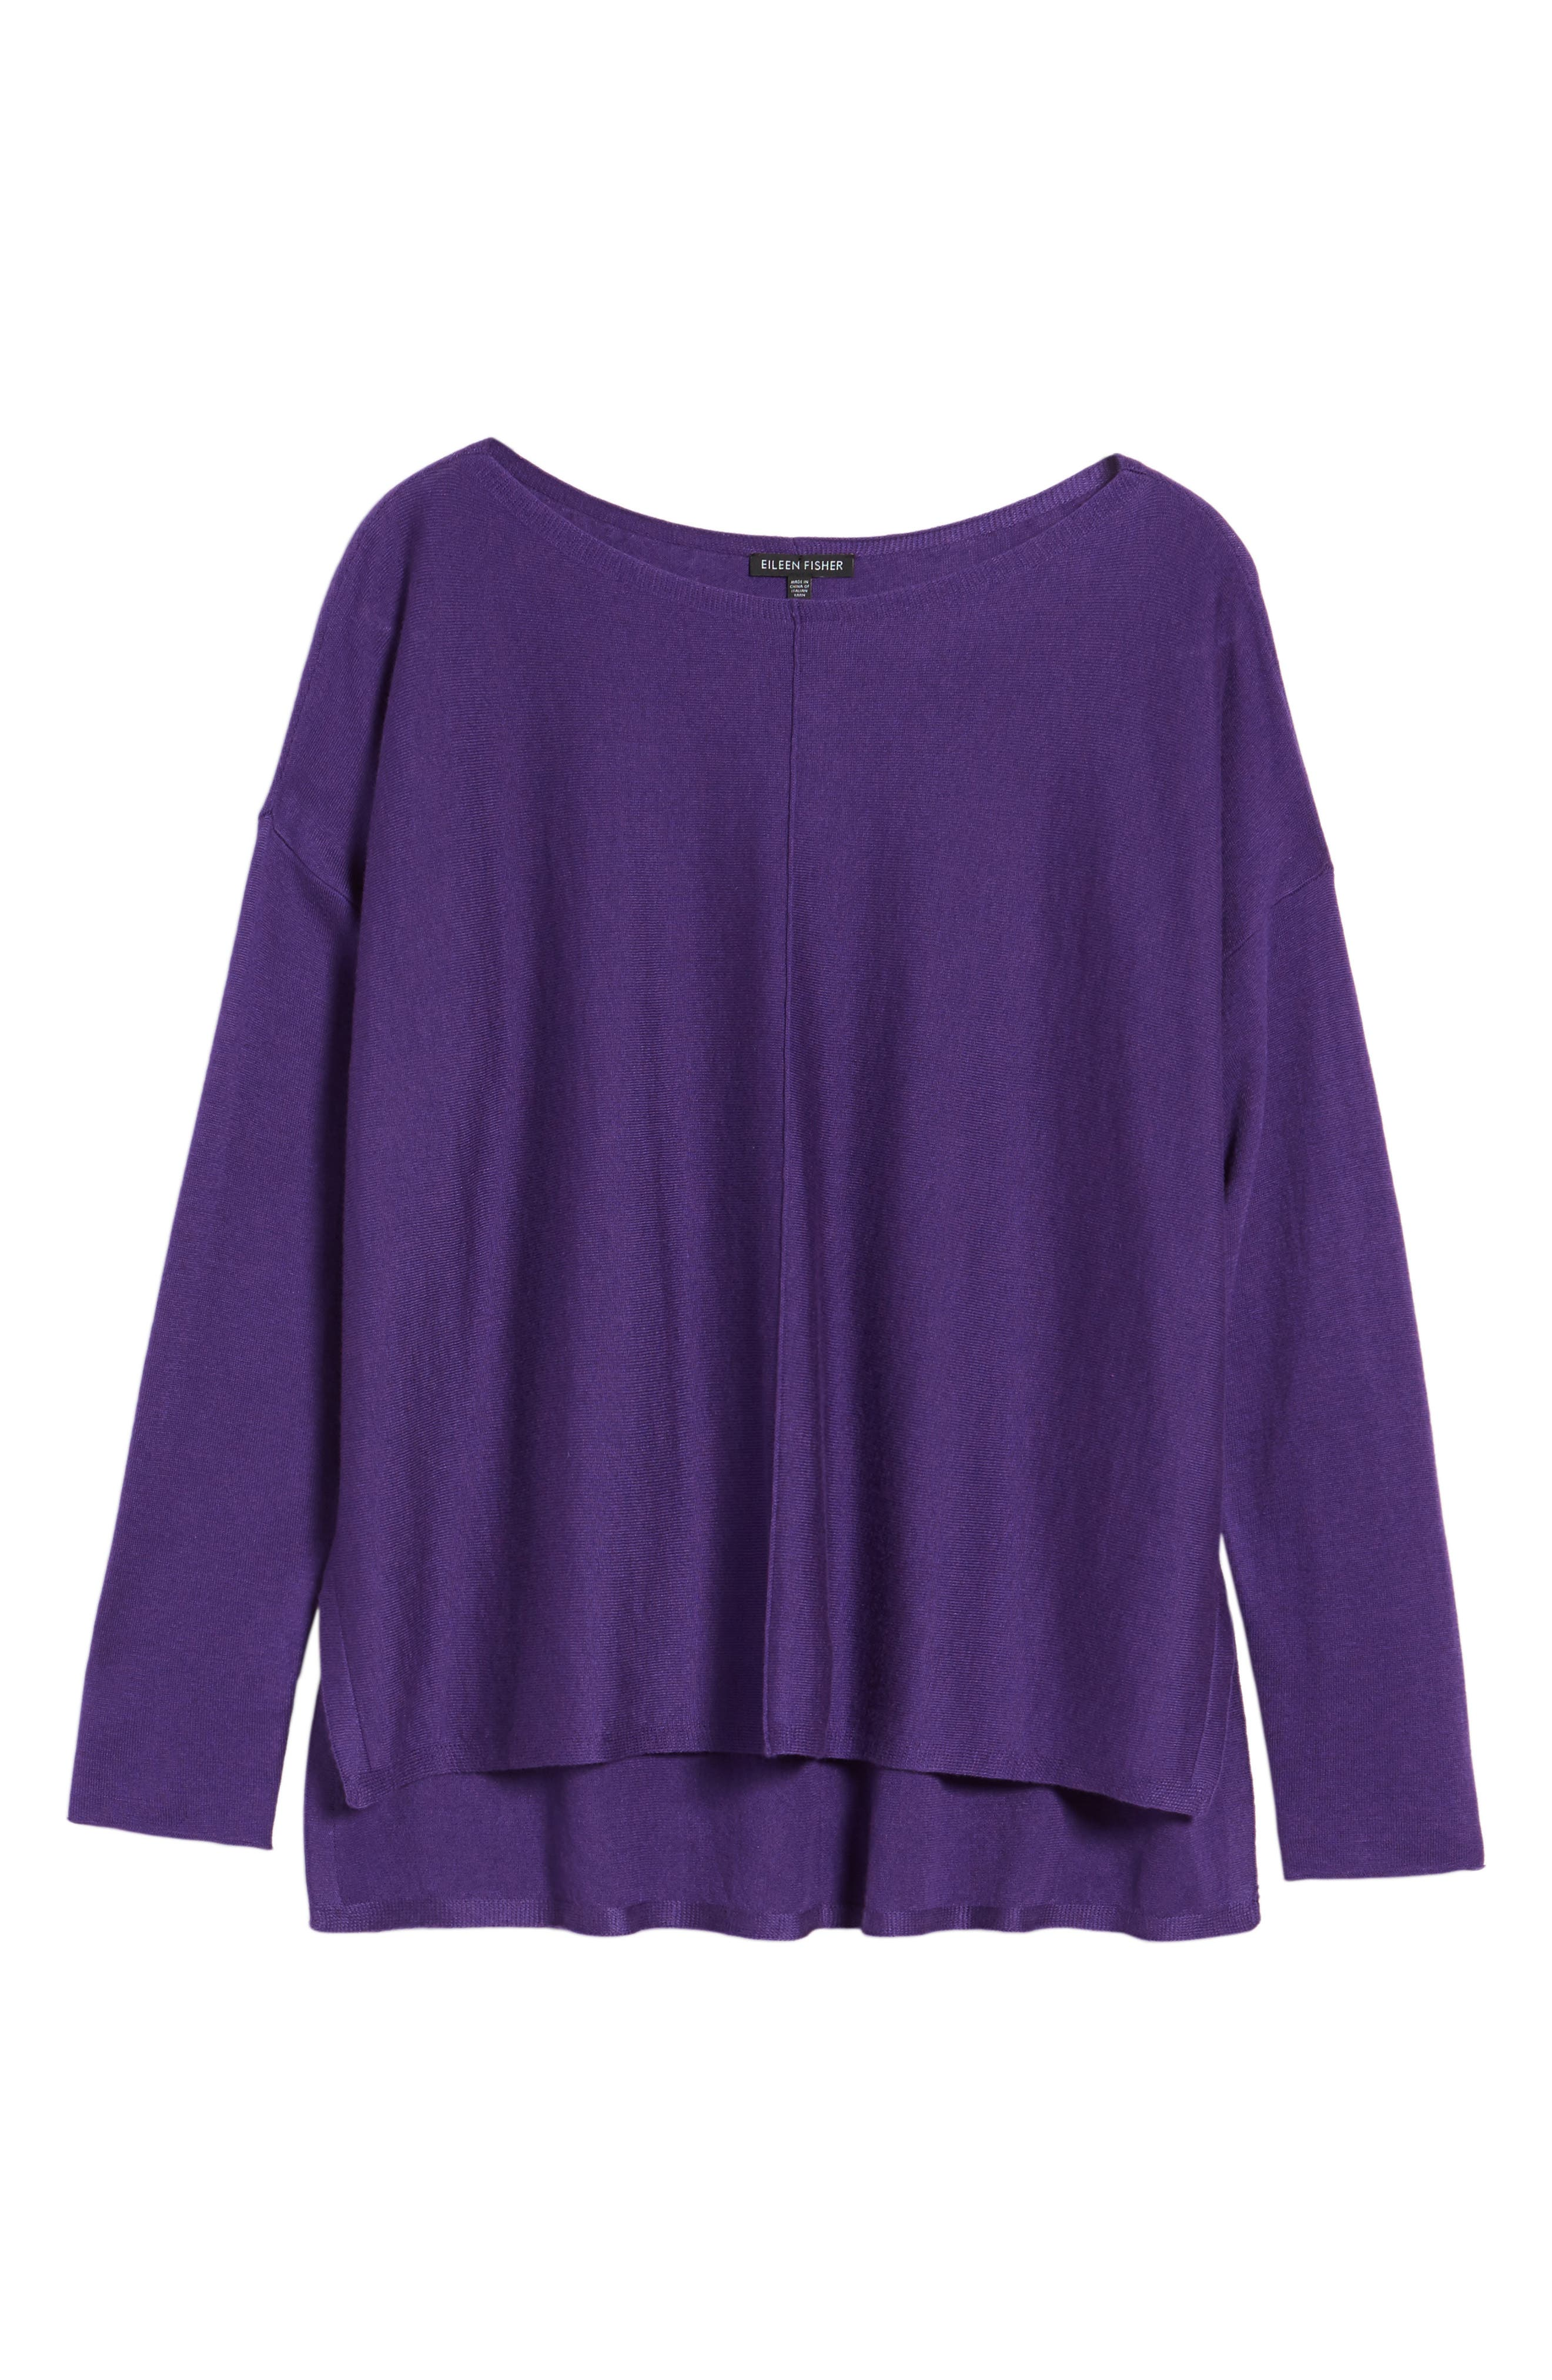 Tencel<sup>®</sup> Lyocell Blend High/Low Sweater,                             Alternate thumbnail 35, color,